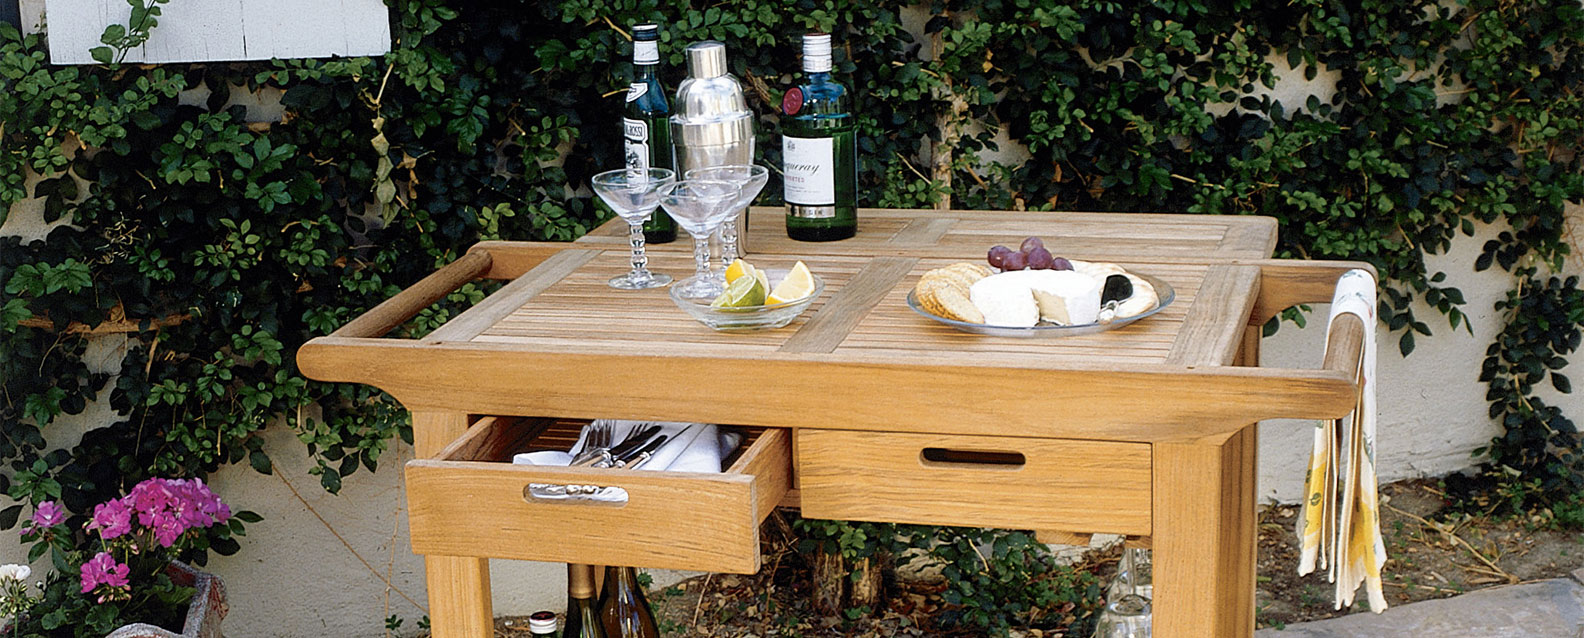 Flexible And Multifunctional, Kingsley Bateu0027s Teak Serving Cart Makes  Supplying A Crowd Easy. With A Bottle Rack, Inverted Stemware Holder, ...